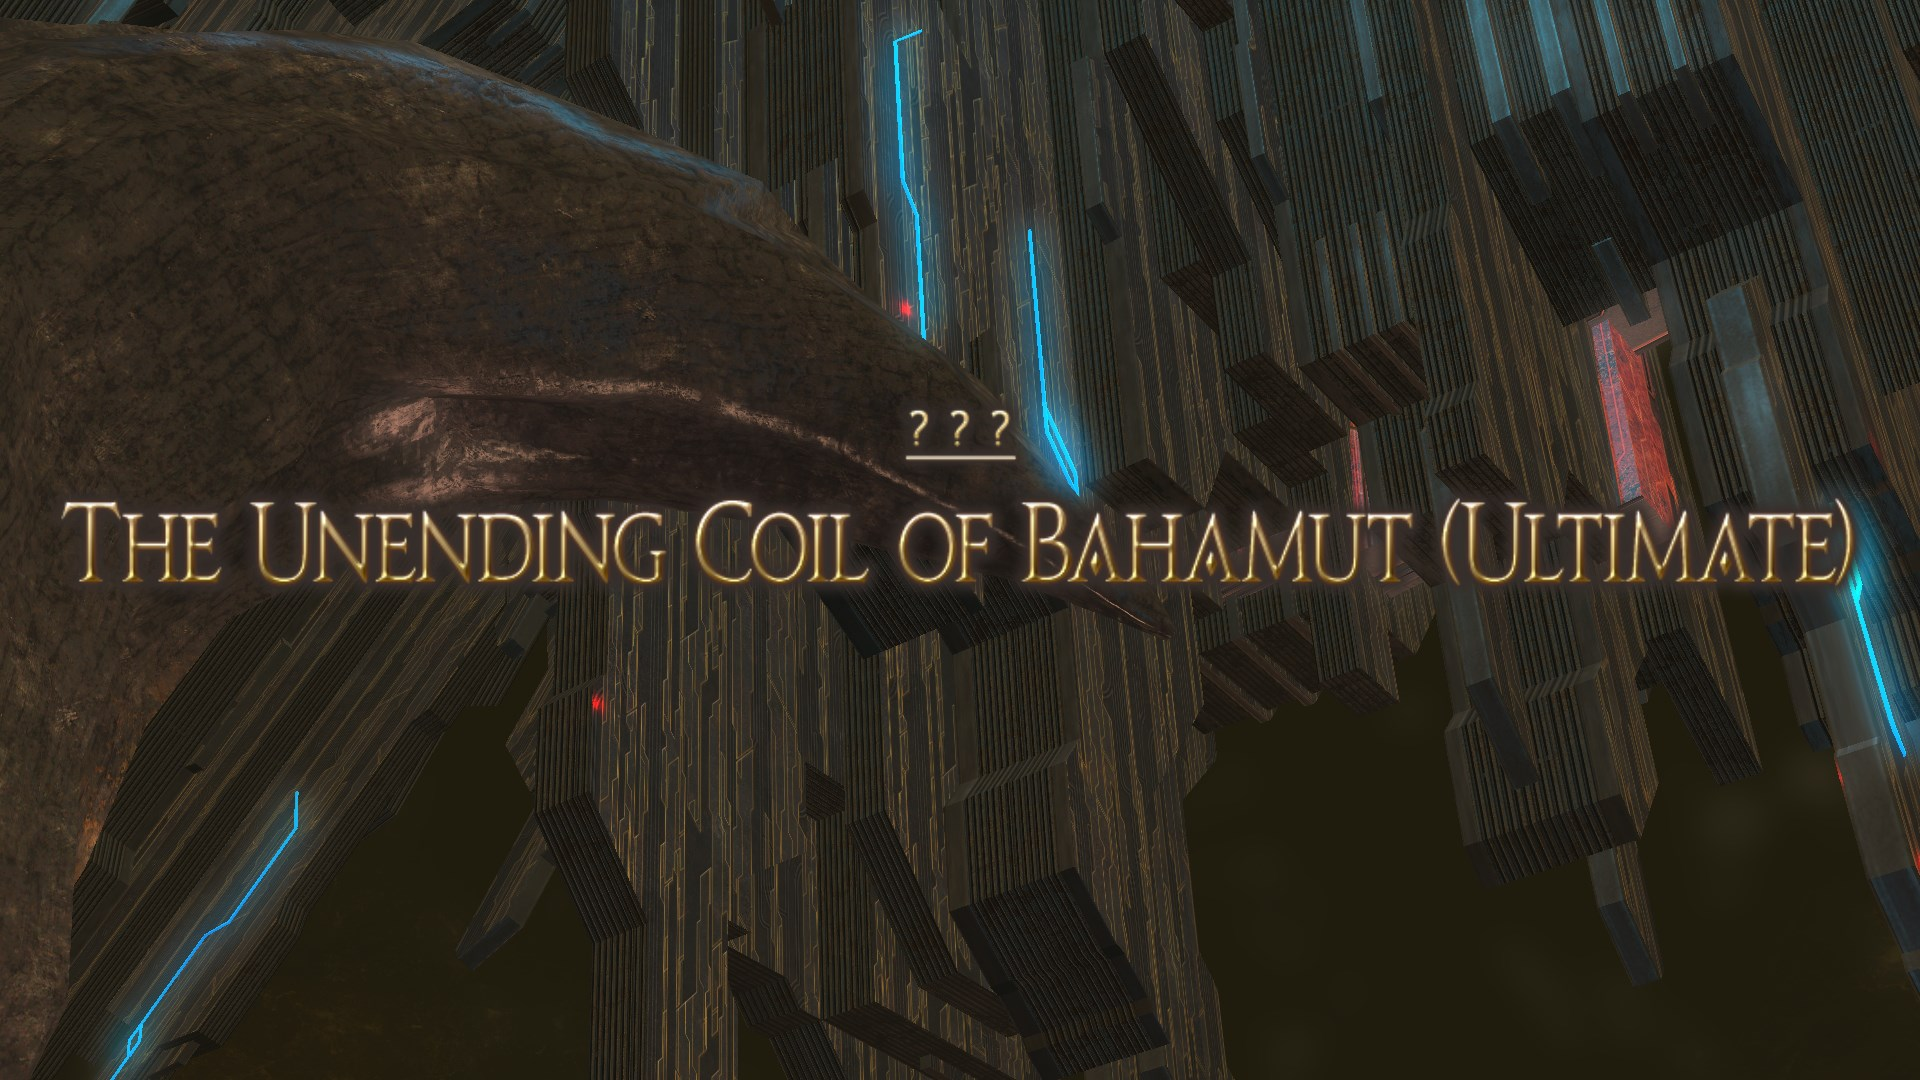 The Unending Coil of Bahamut (Ultimate) – clees.me